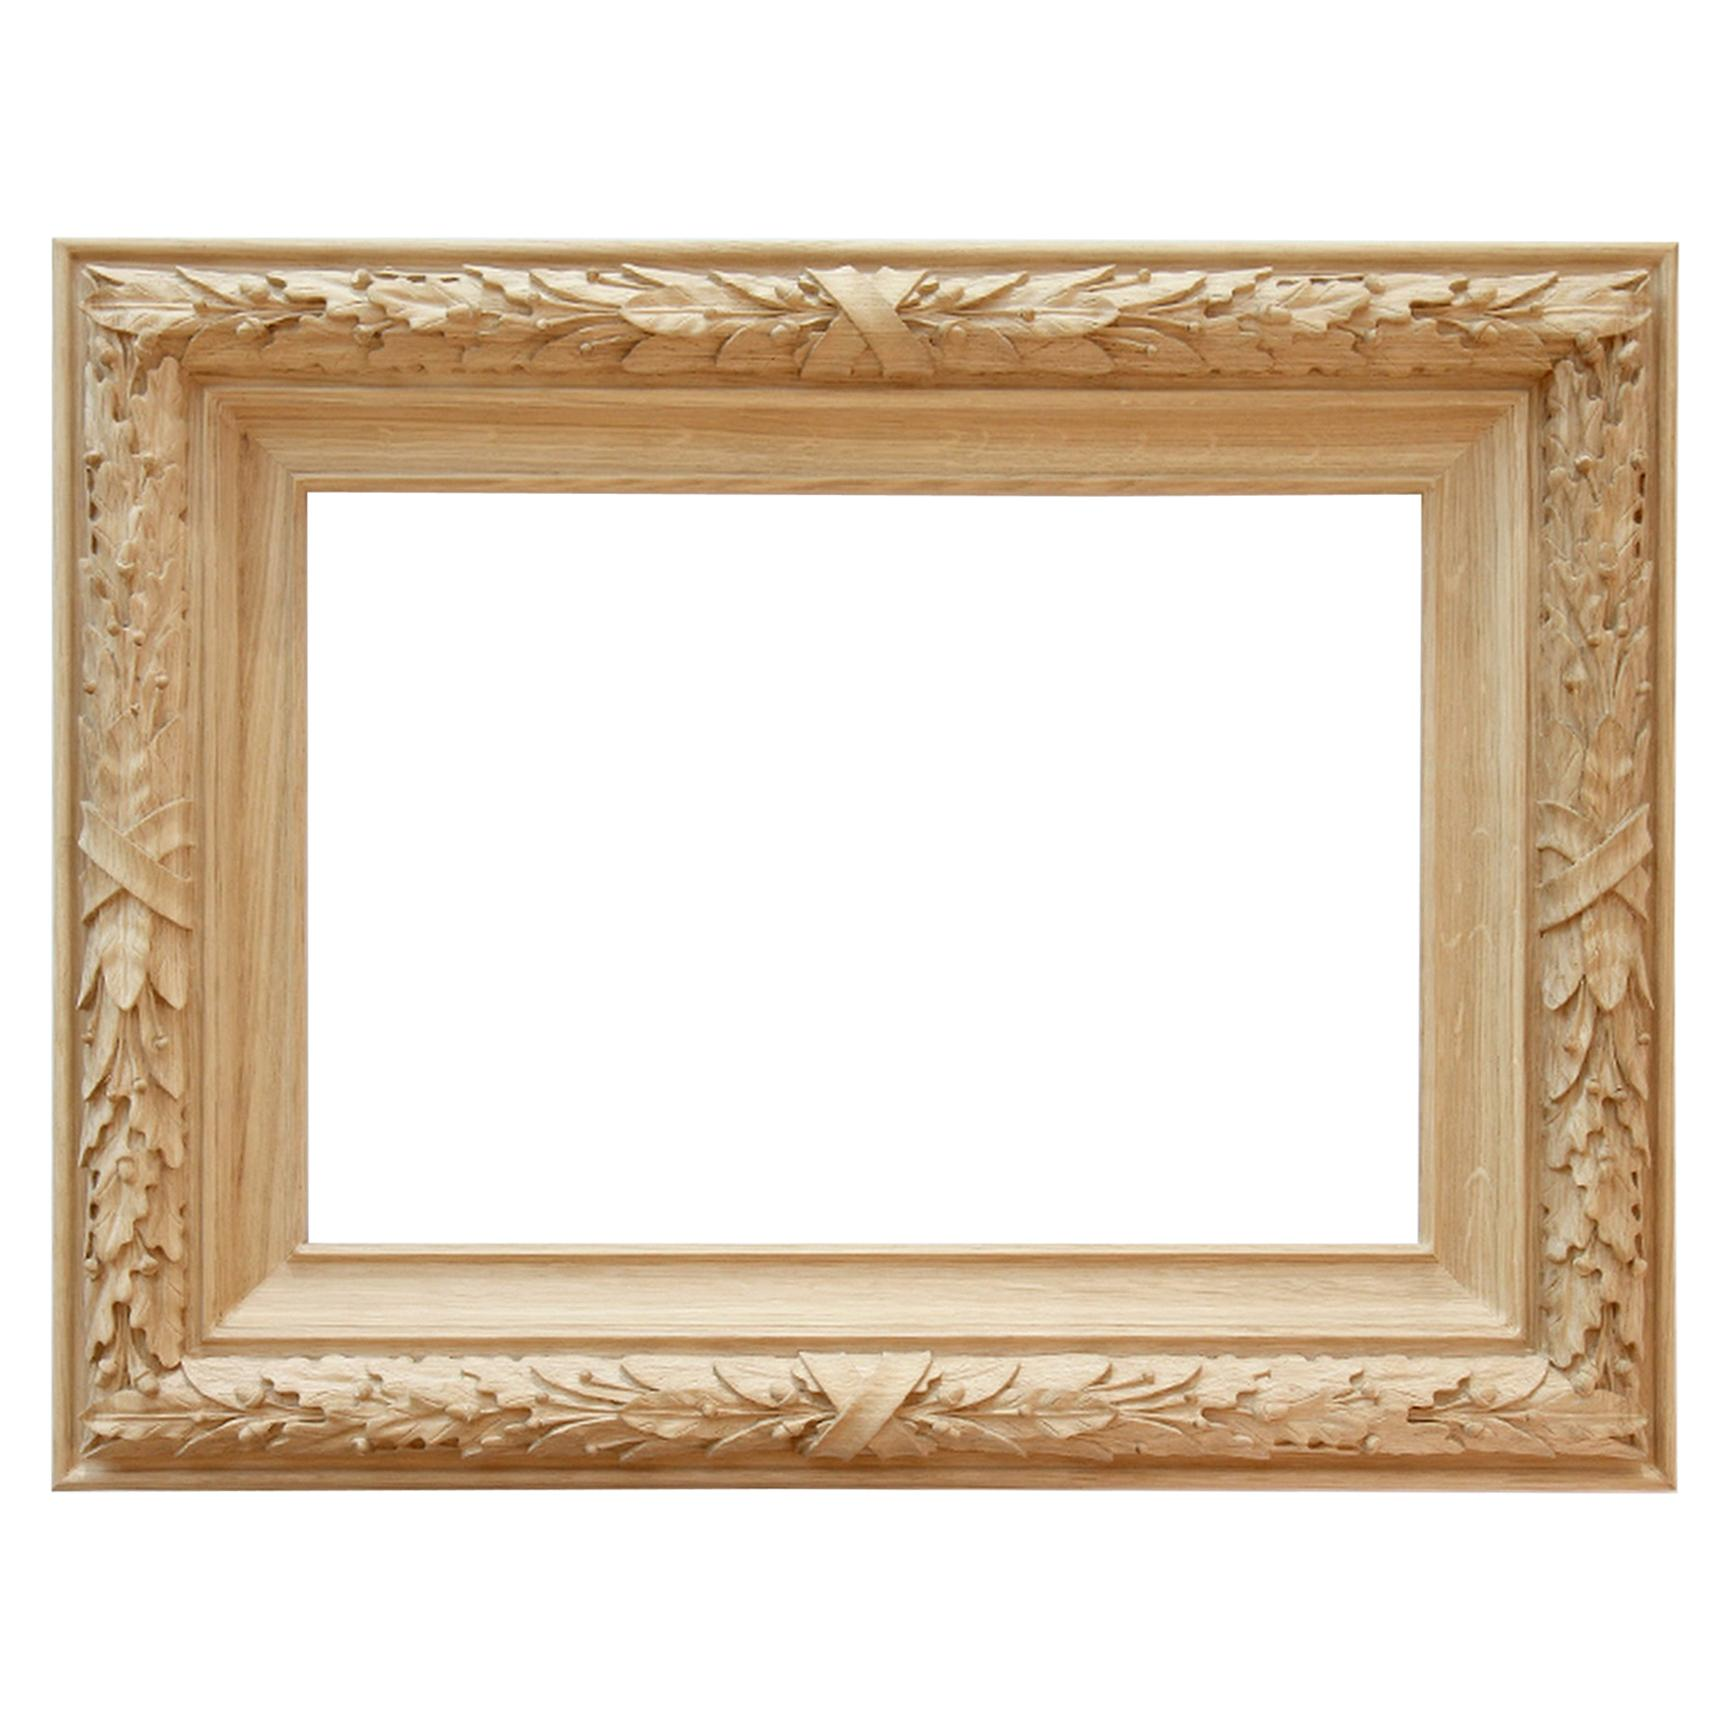 Beautiful Wall Carved Wood Mirror Frame with a pattern of oak and laurel leaves